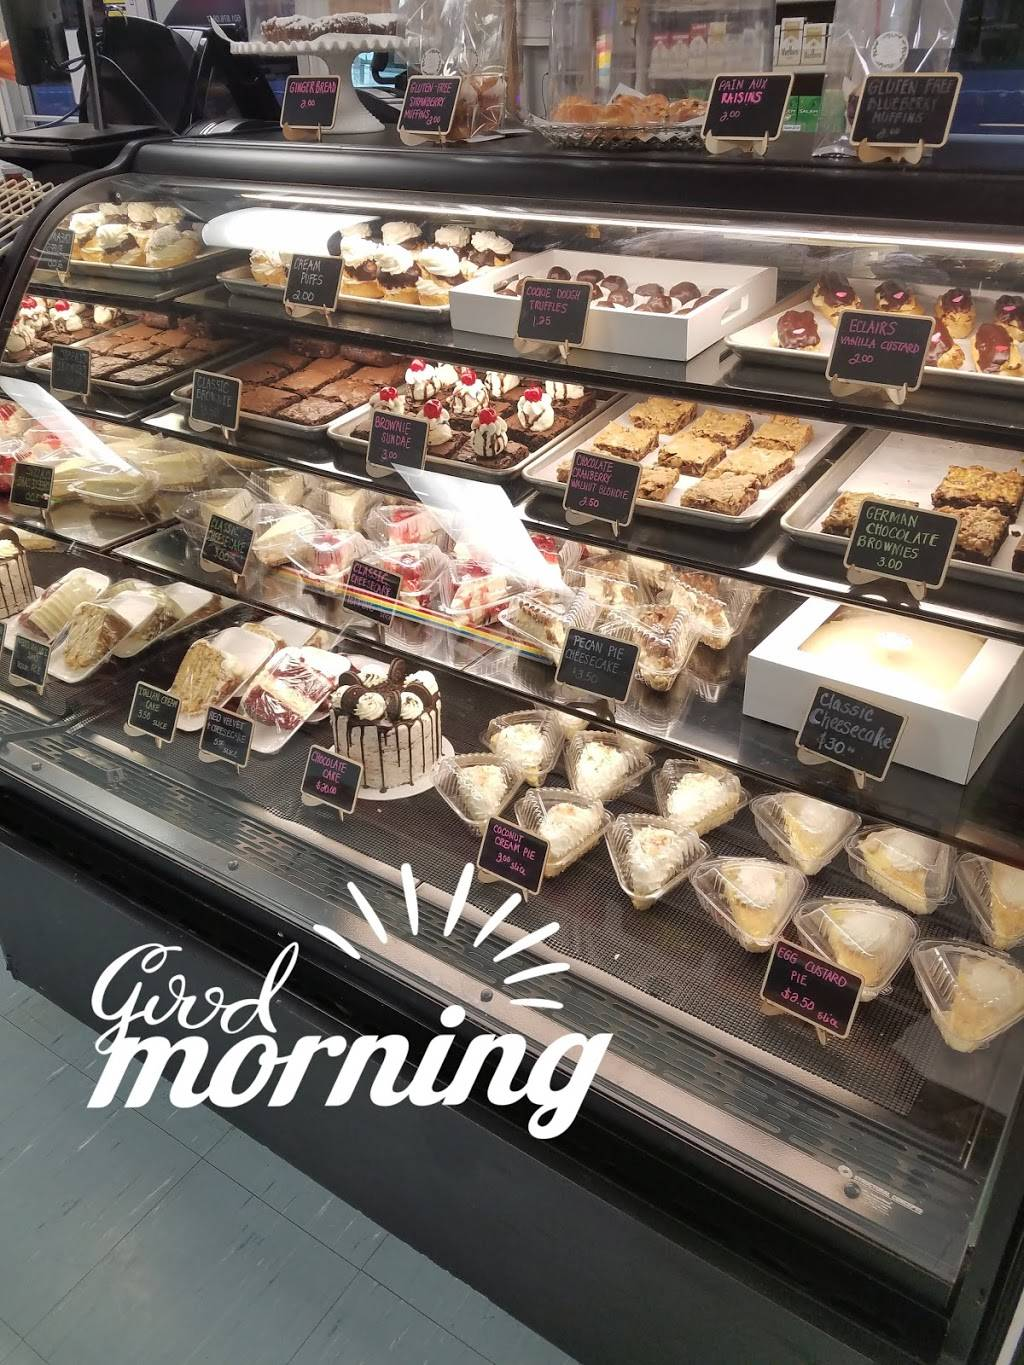 The Blue Store | bakery | 518 MS-48, Tylertown, MS 39667, USA | 6018760847 OR +1 601-876-0847